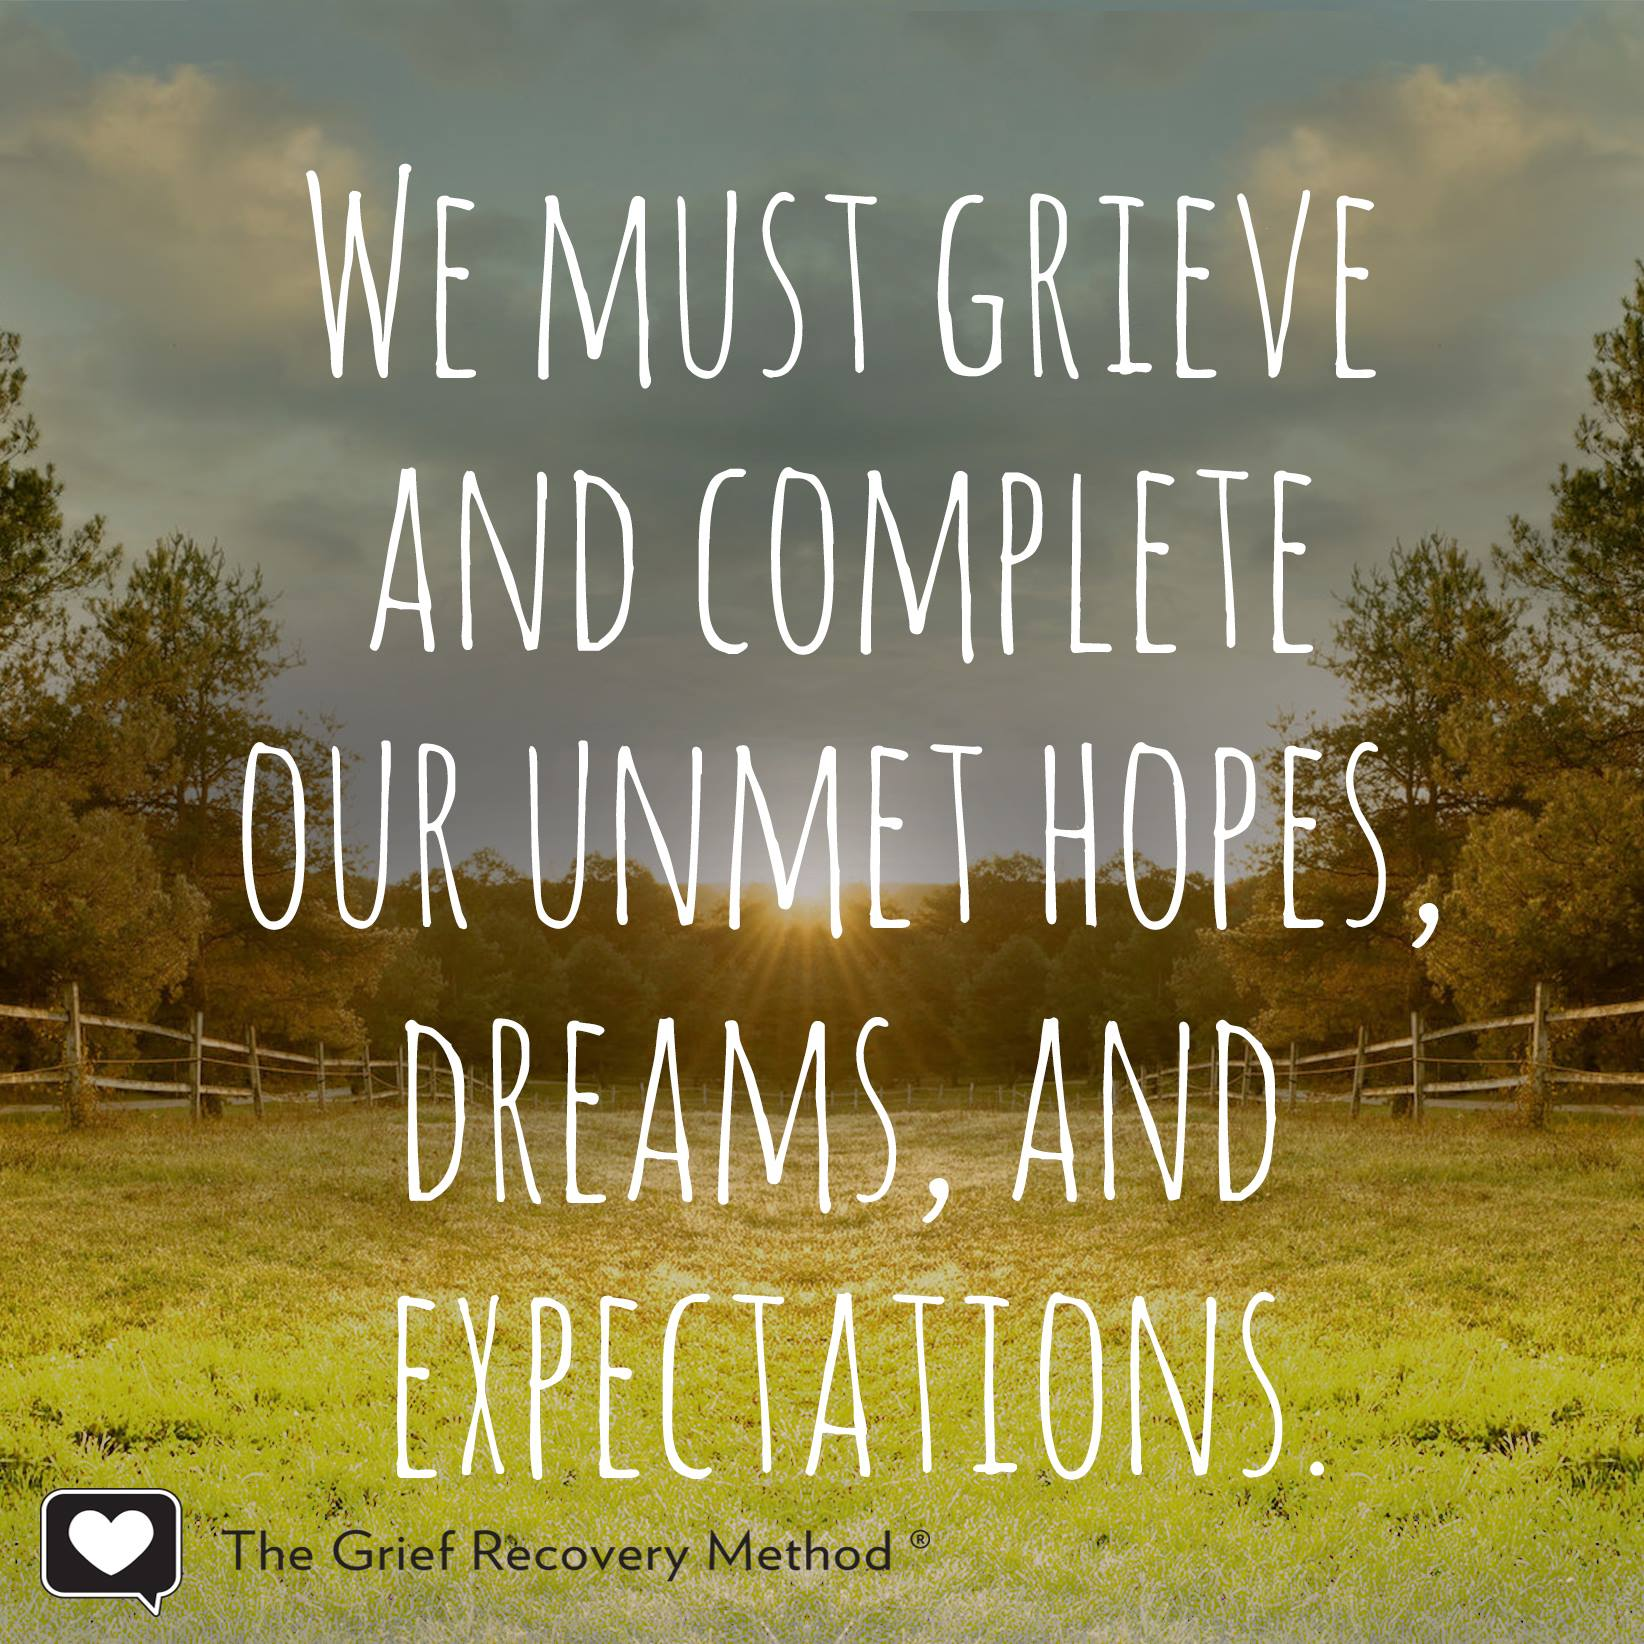 regret grief unmet hope dream complete